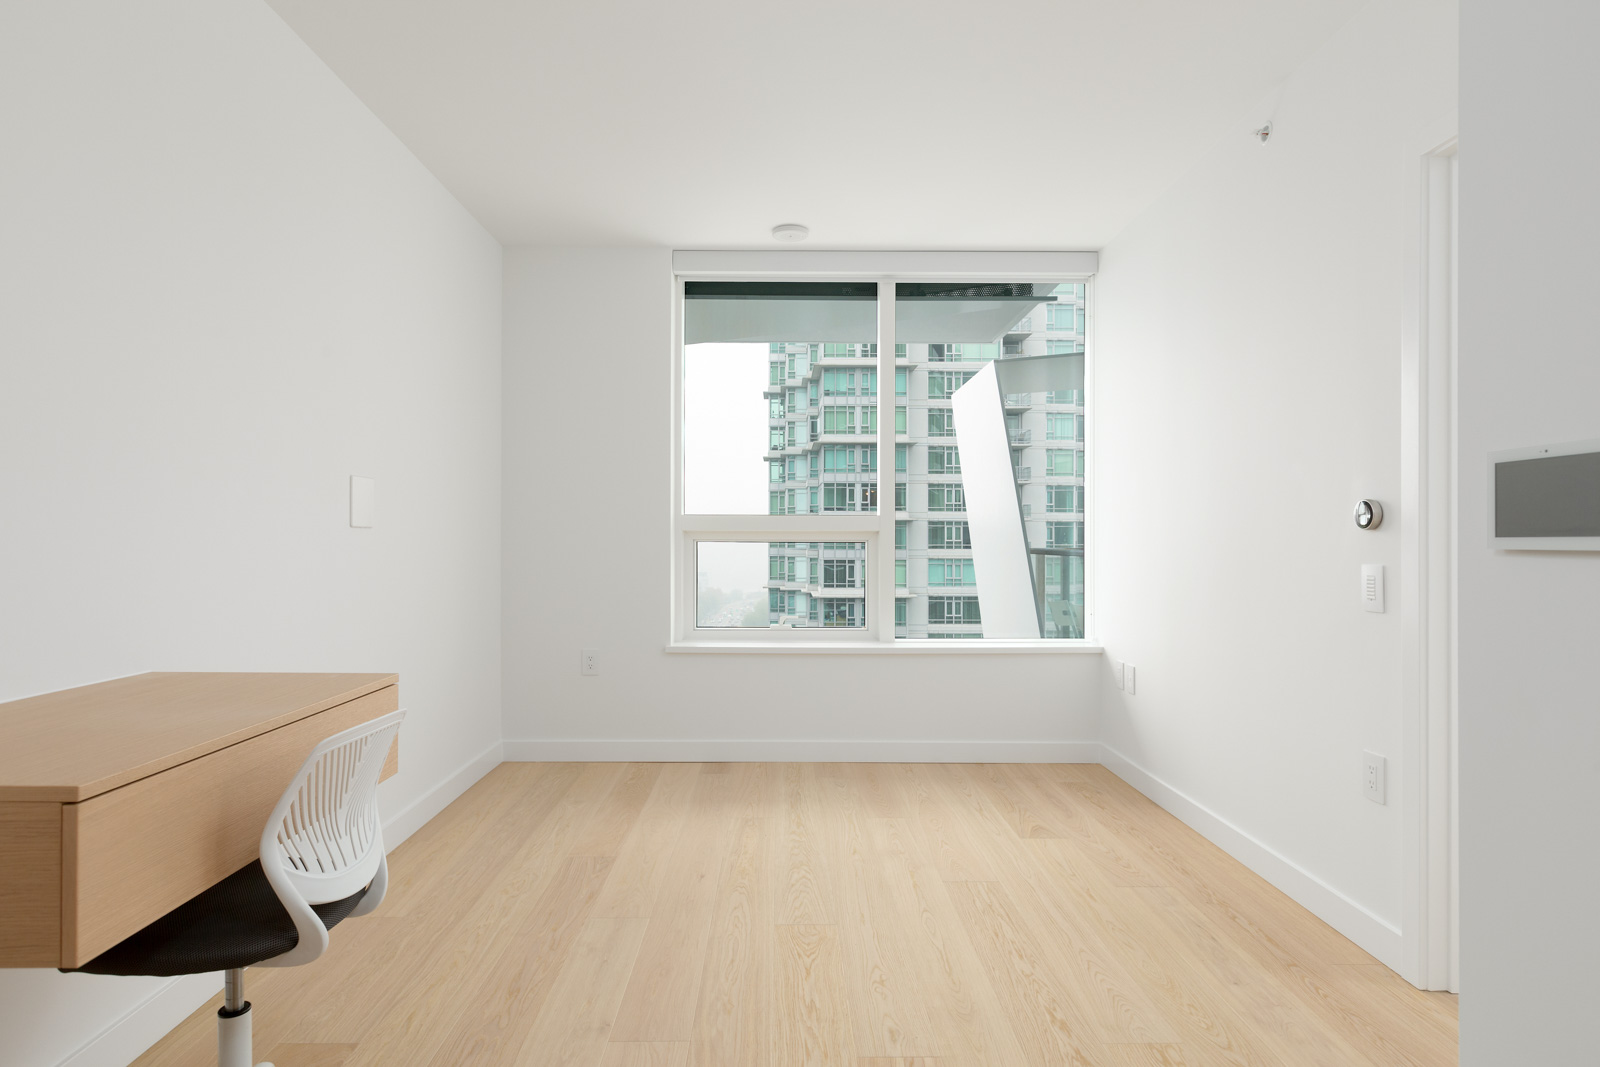 empty living room in bosa brand new cardero building designed by henriquez partners architects in coal harbour in downtown vancouver